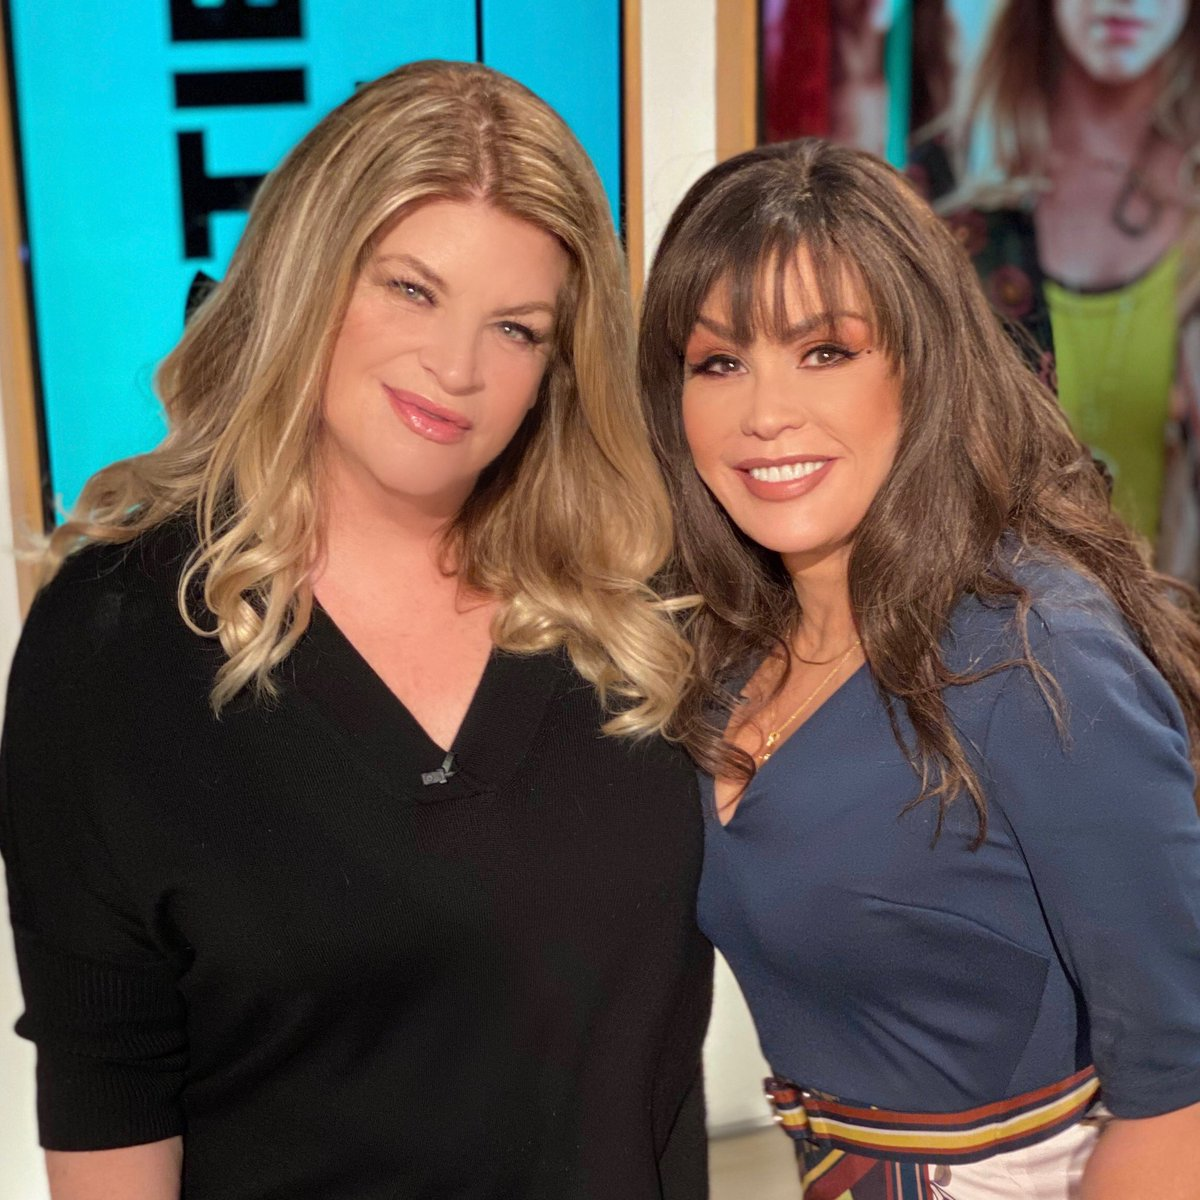 Marie Osmond On Twitter So Great To See You Again Kirstiealley Come Back Soon We Love You To Pieces Here At Thetalk